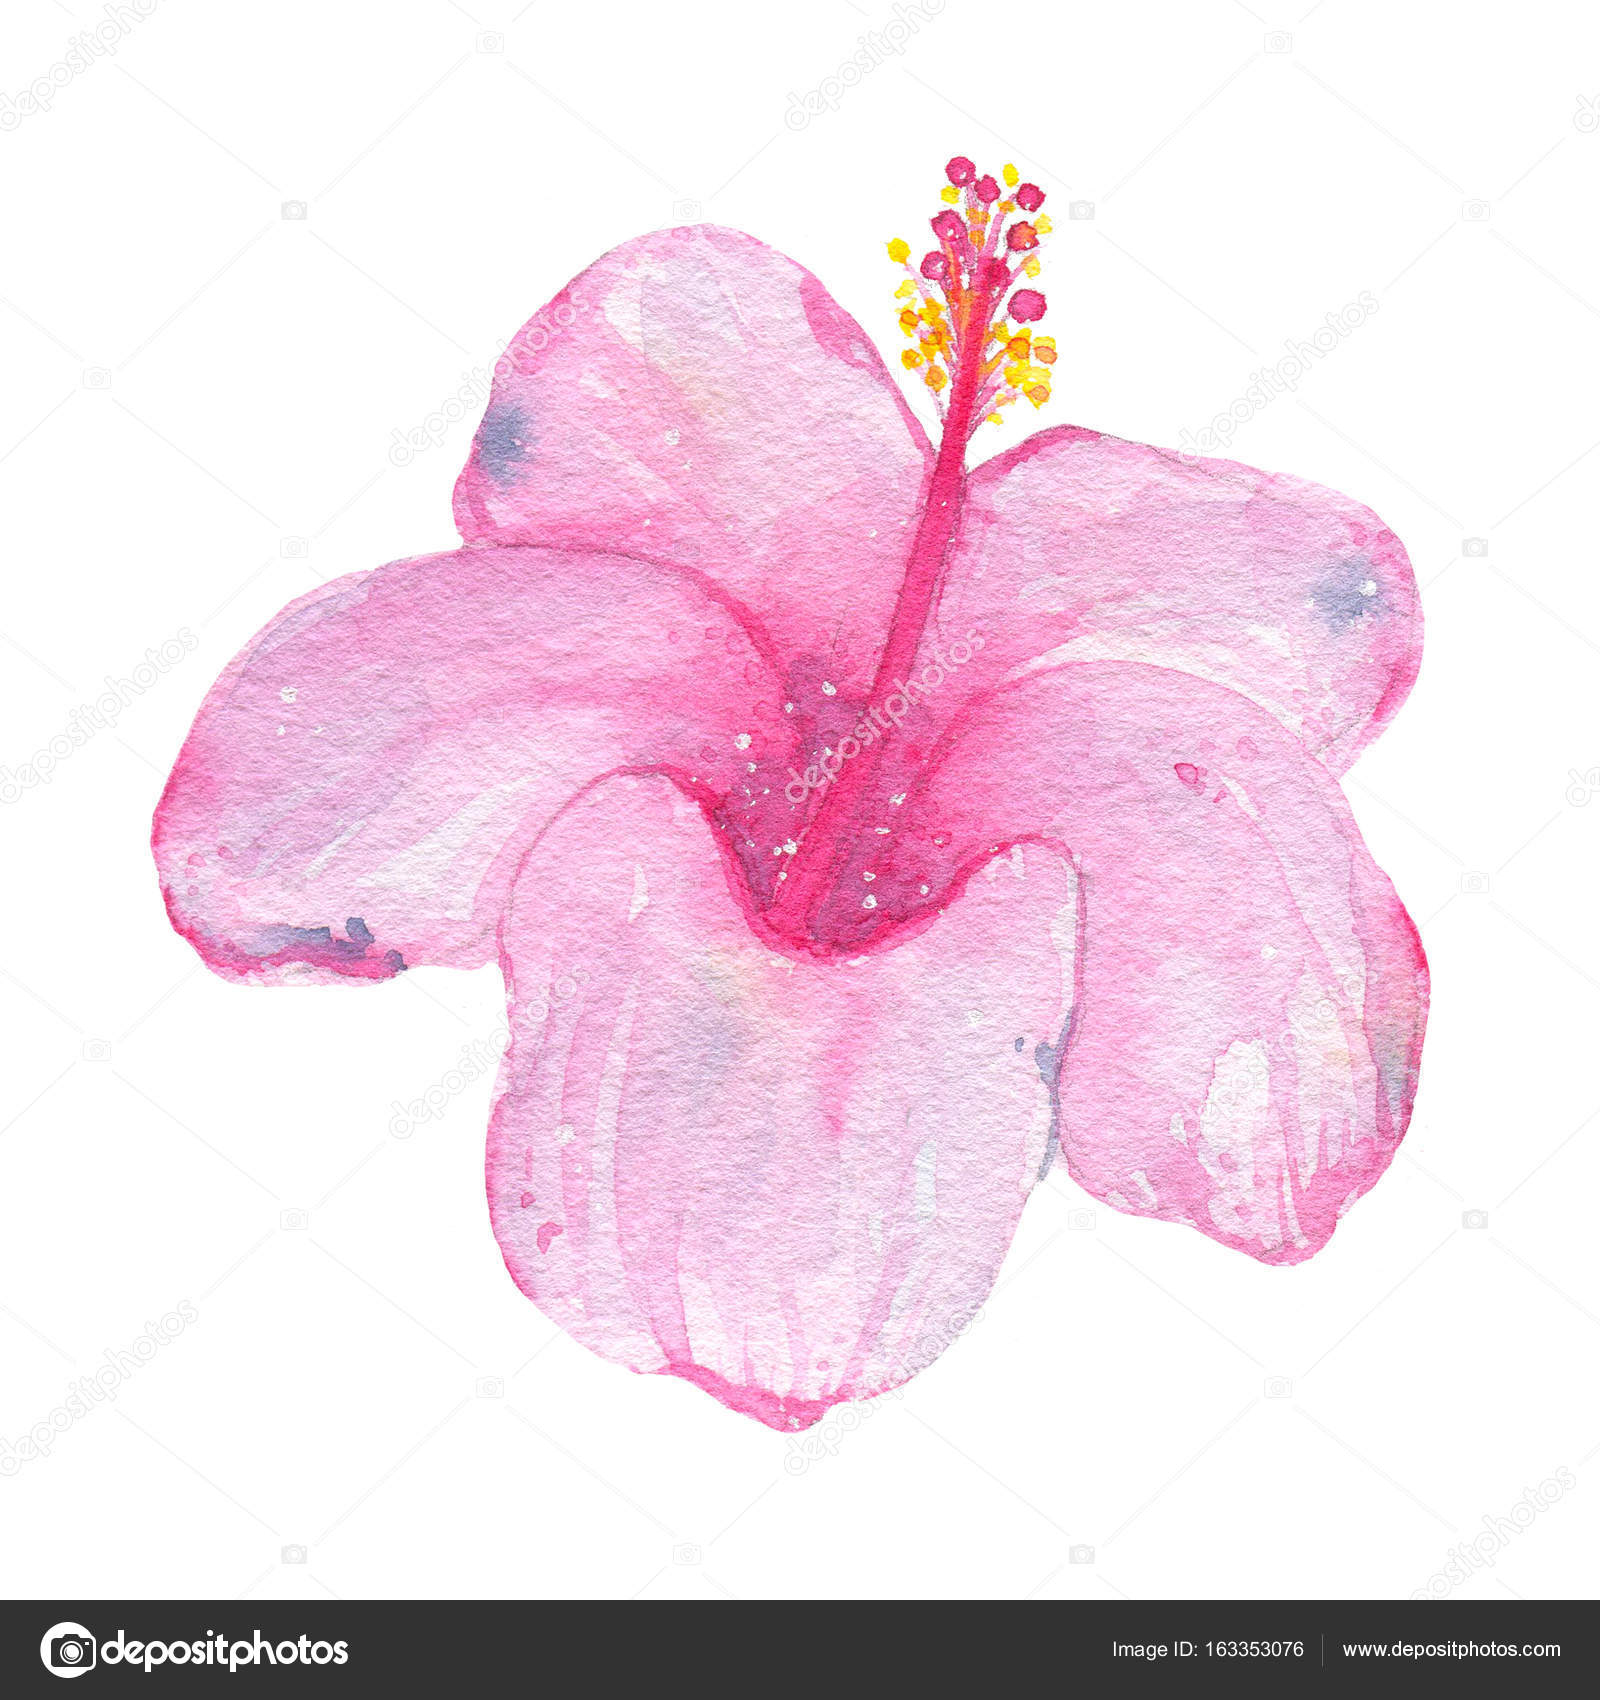 Watercolor Hand Painted Tropical Flower Pink Hibiscus Isolated On